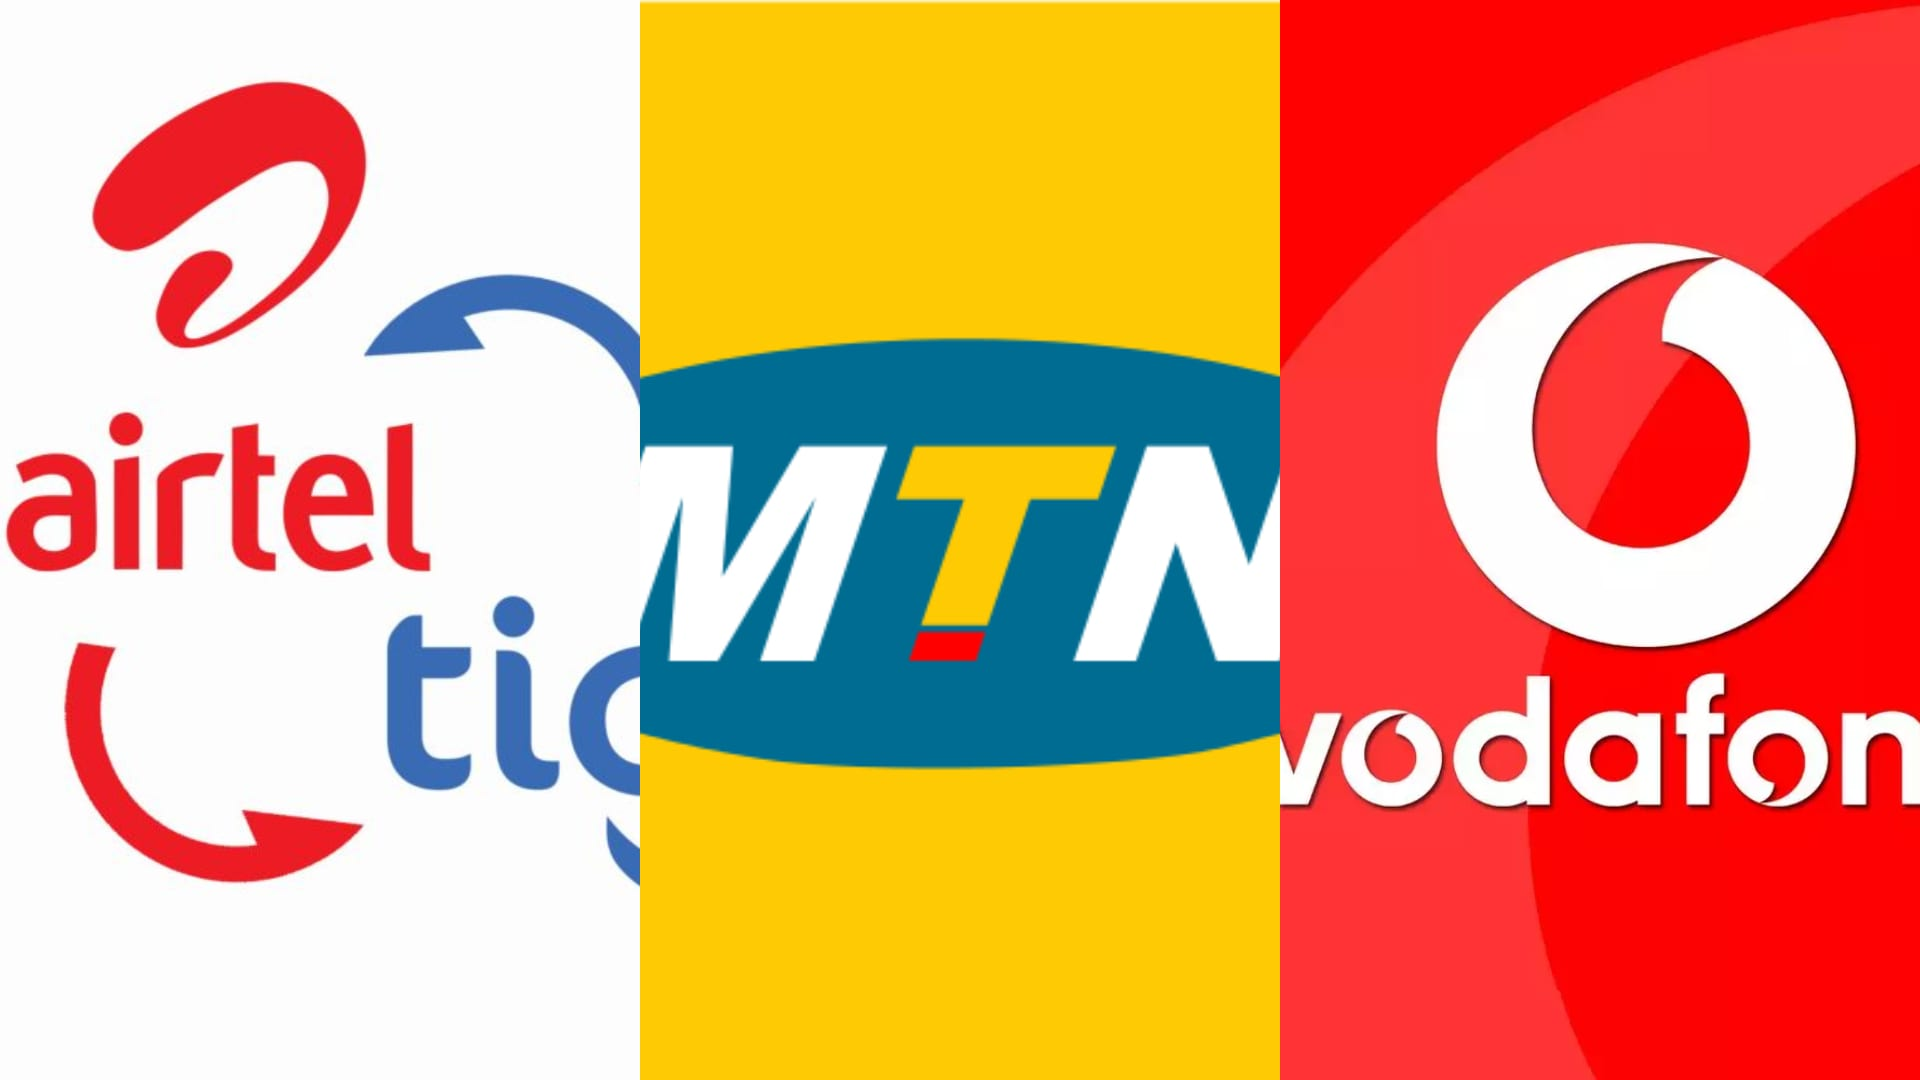 How to check your mobile number on all networks in Ghana